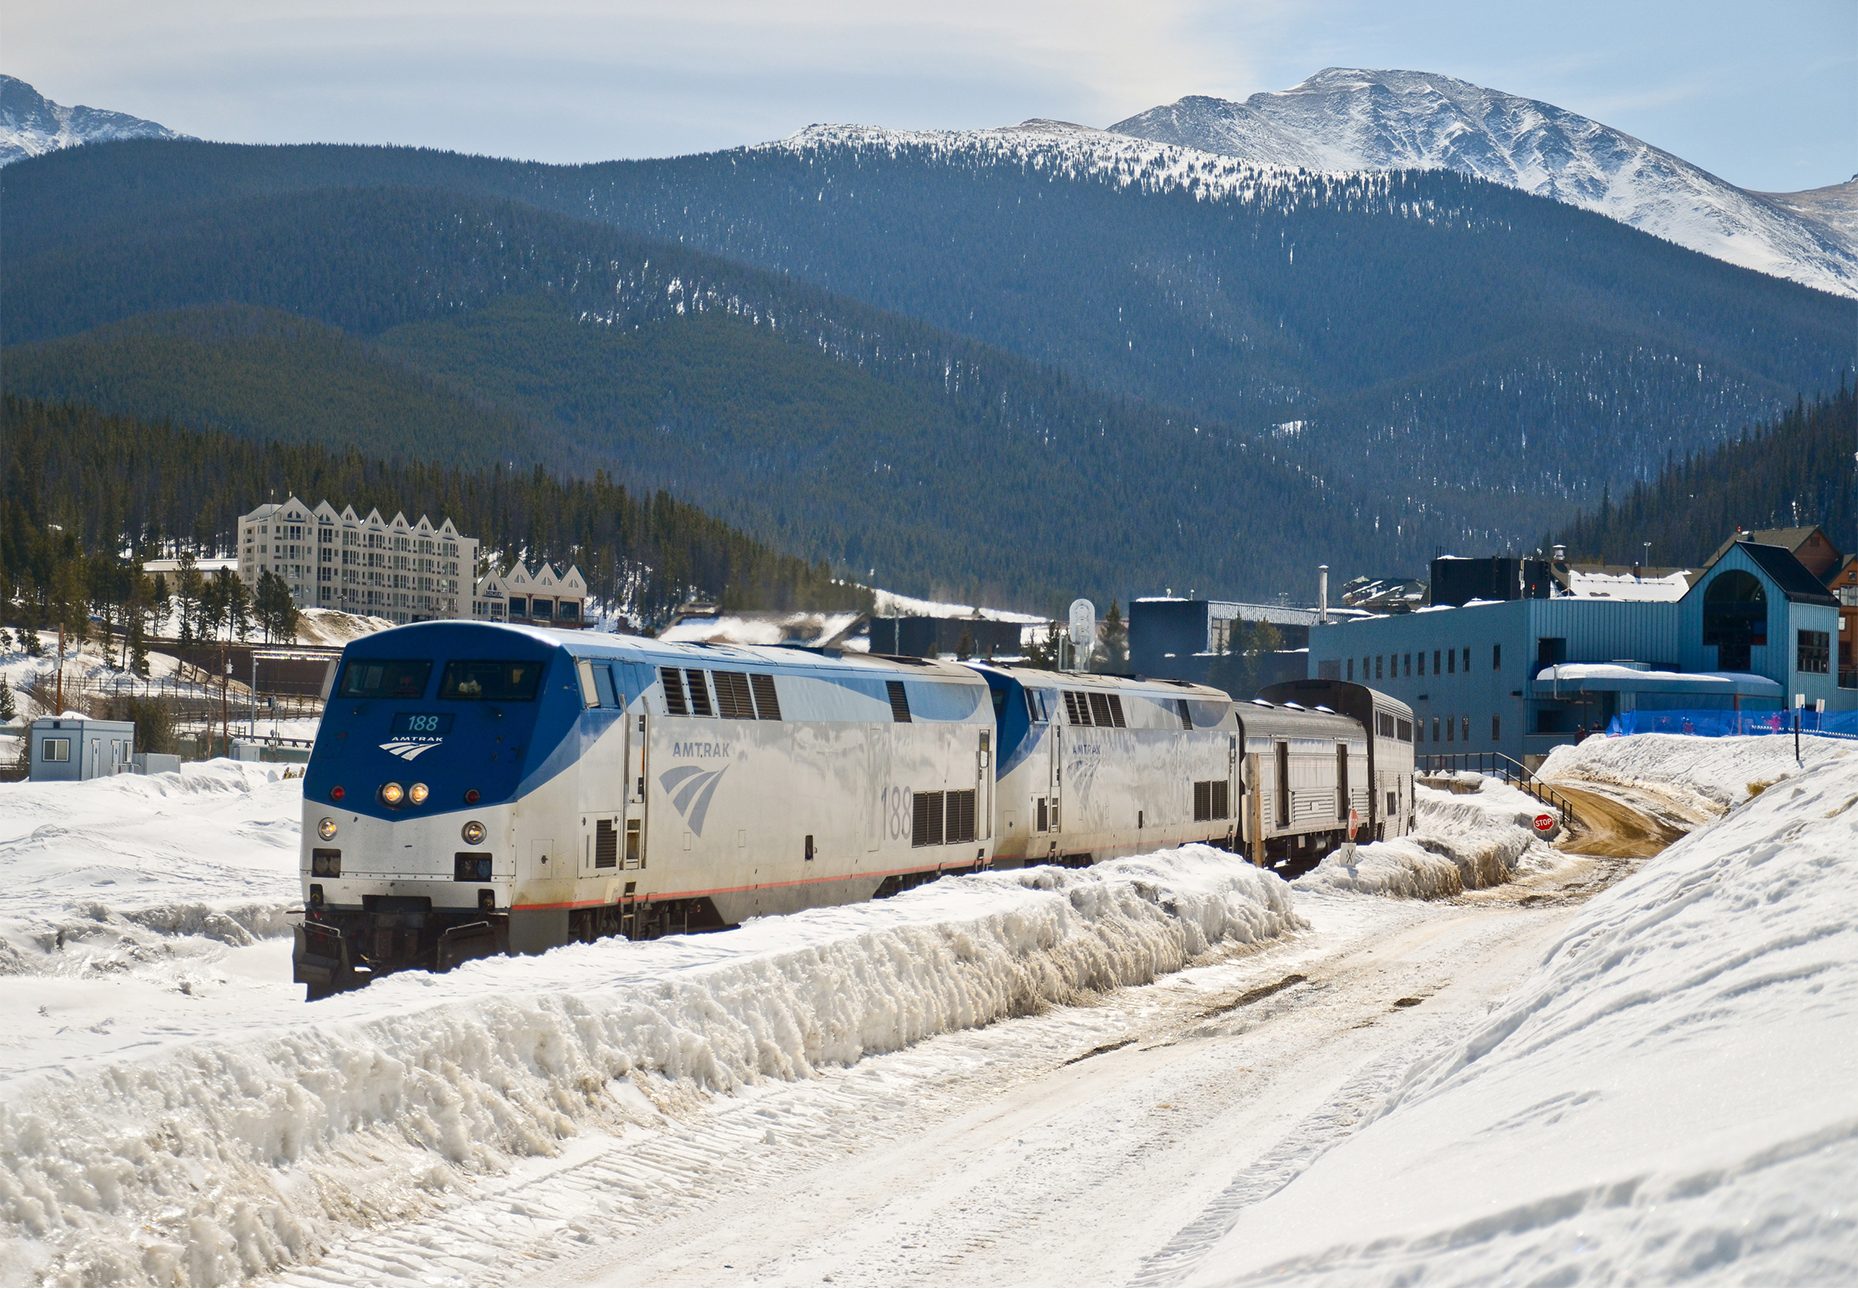 Ski Train to Winter Park: January 5th - March 25th in its second season in 2018